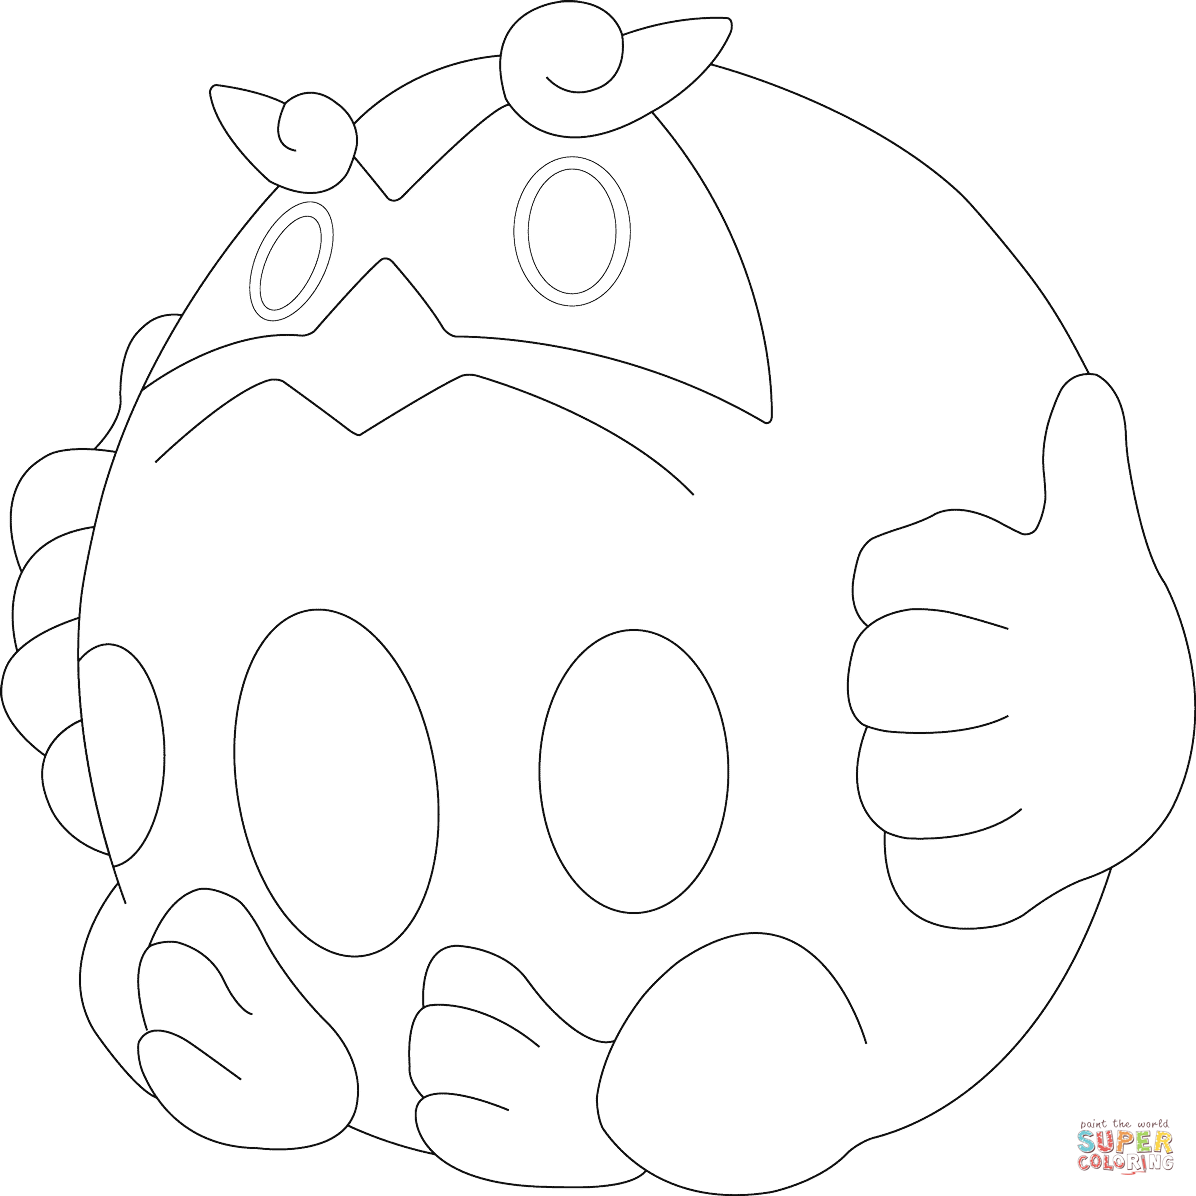 Darmanitan in Zen Mode coloring page.